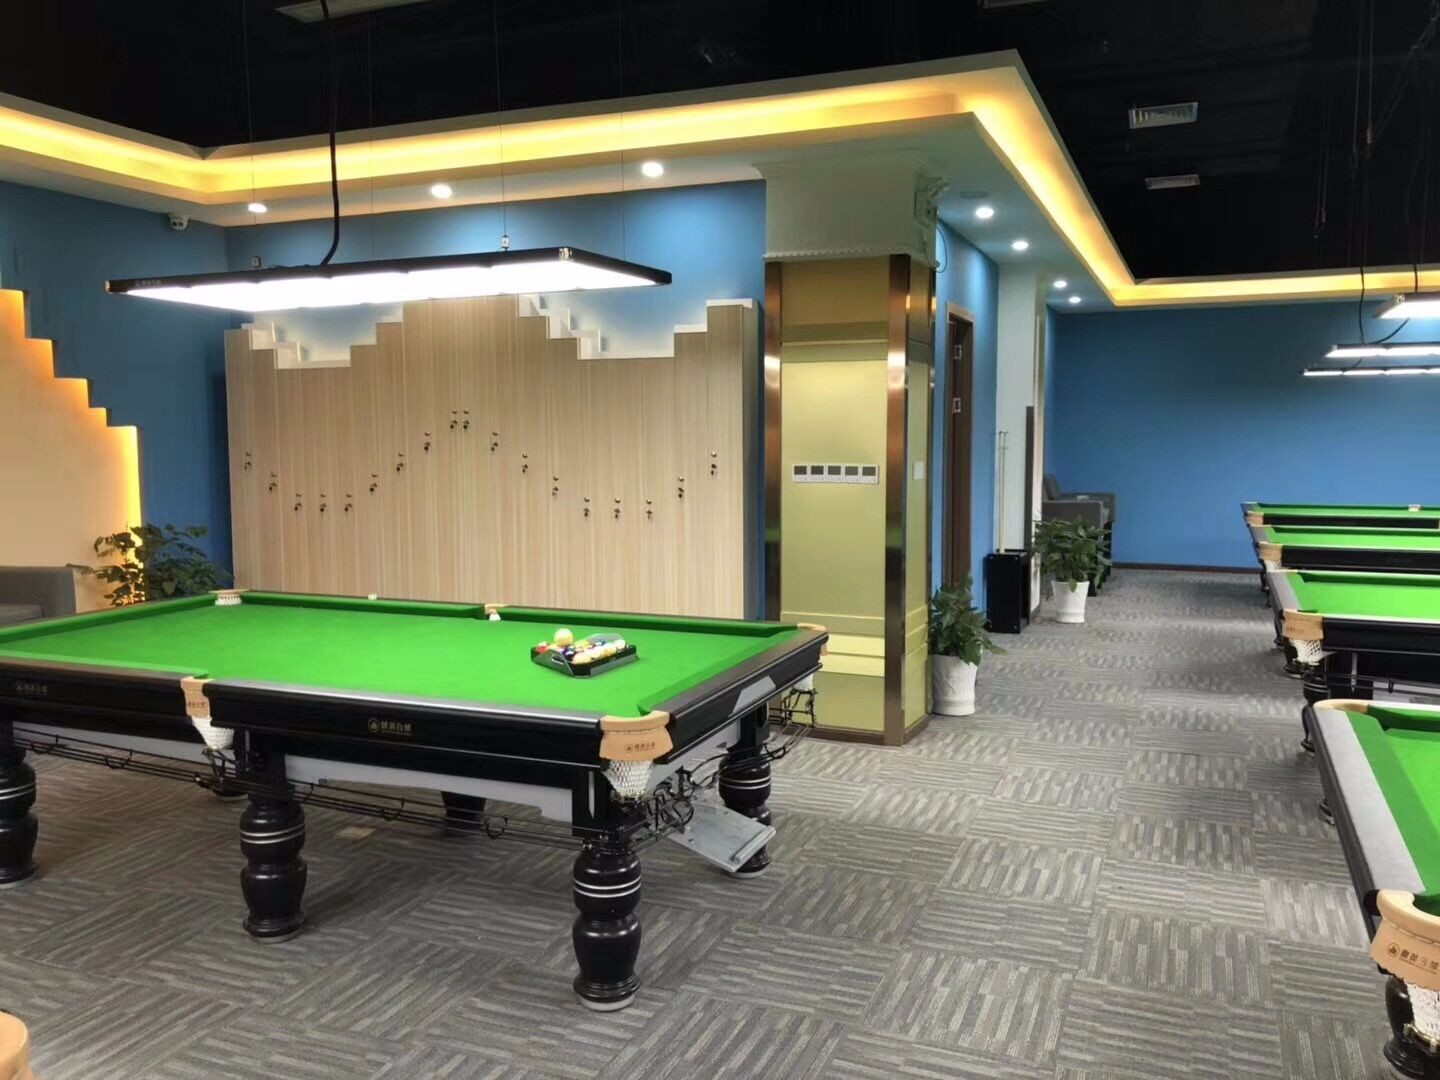 new pool hall in UK JY brand